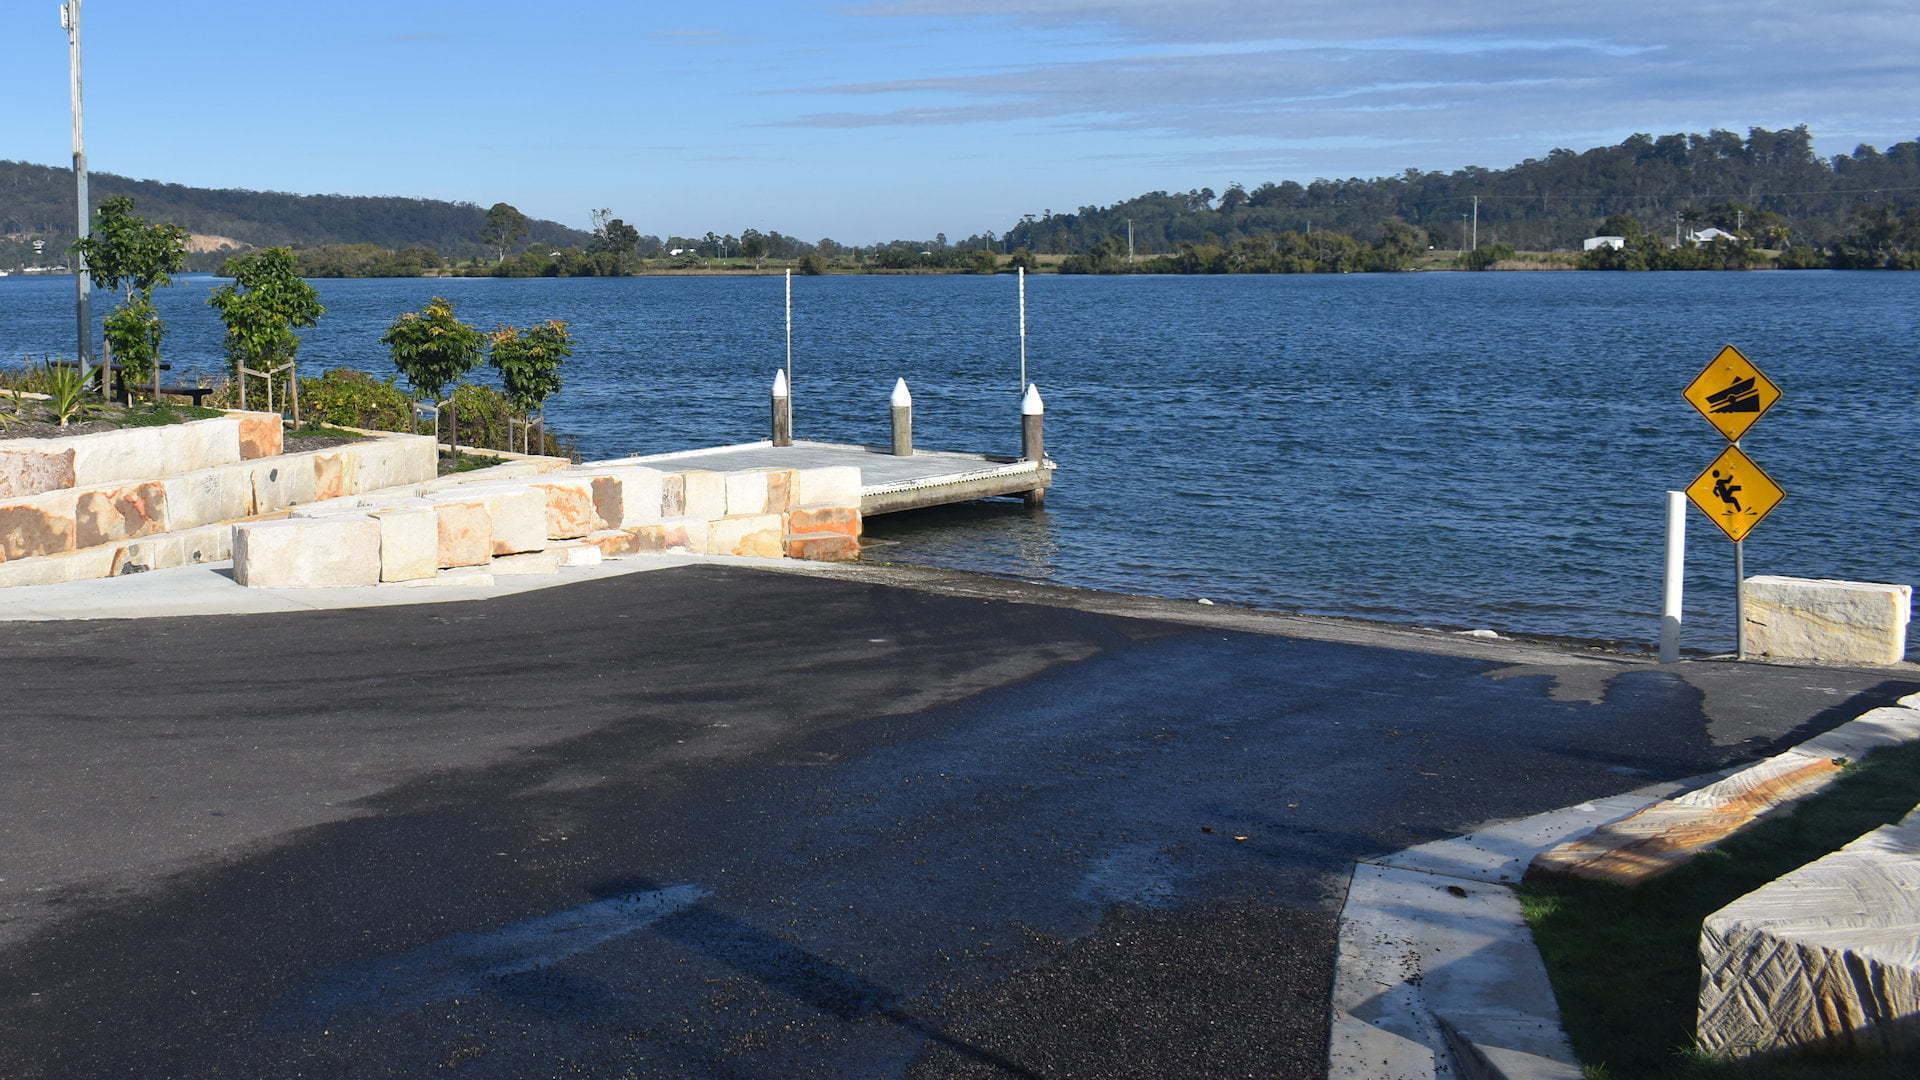 Boat ramp at a river, taken at the Old Ashby Ferry Ramp on the Clarence River in Maclean